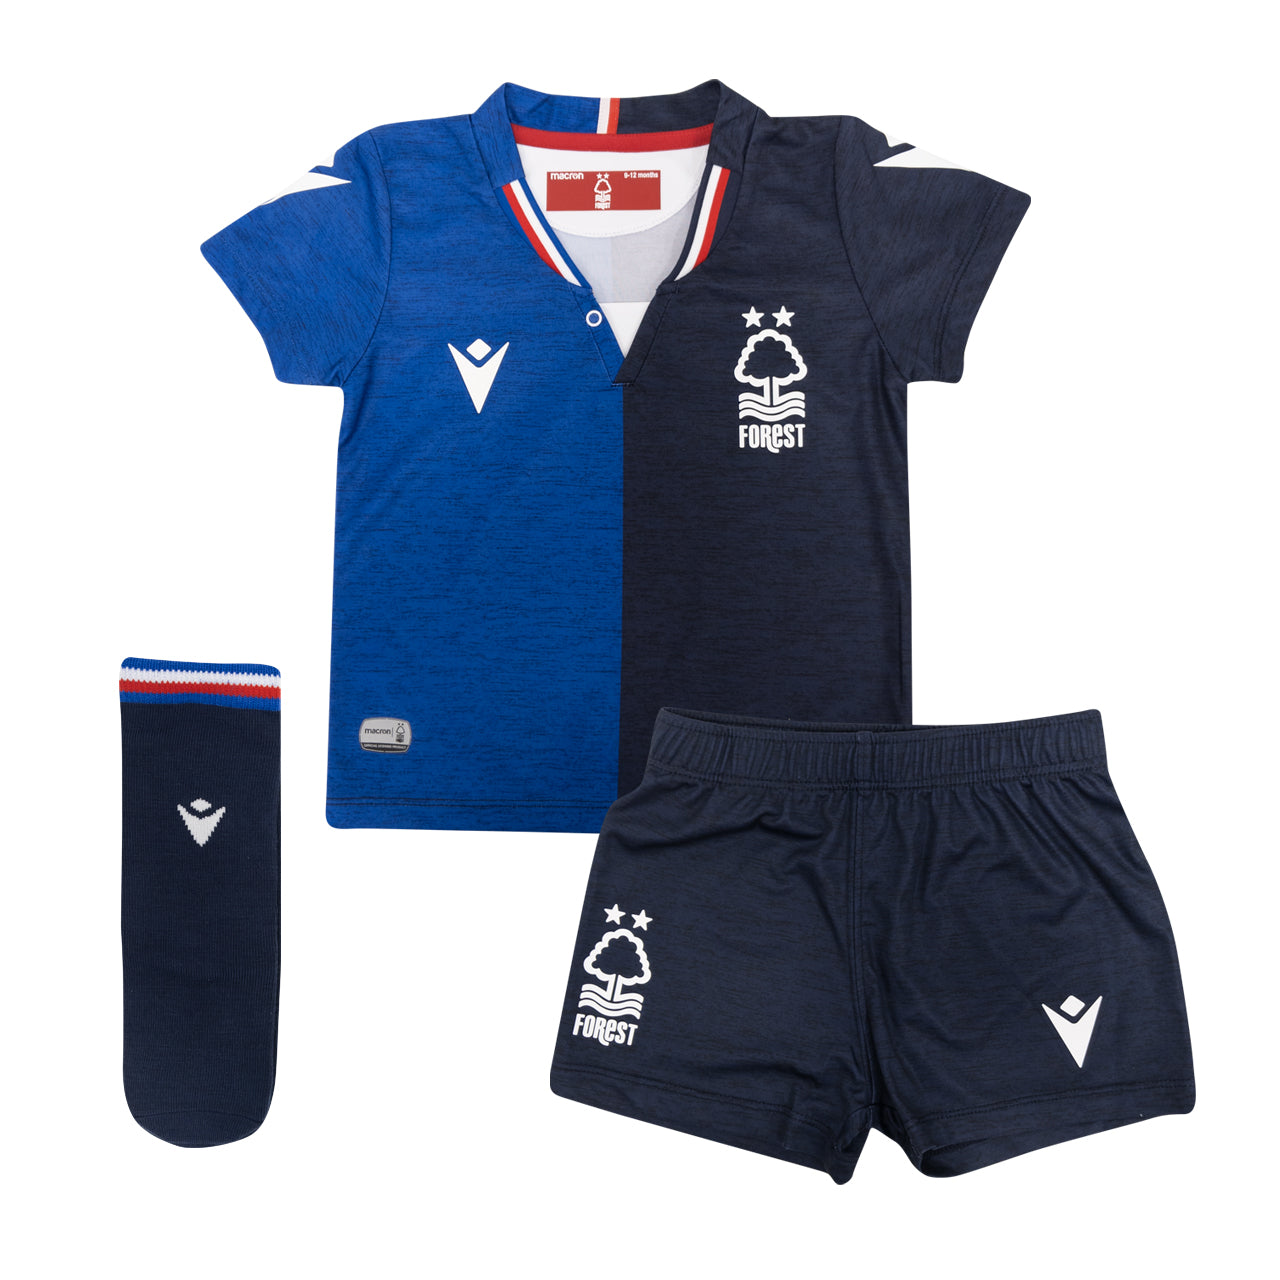 NFFC Baby Away Kit 2019/20